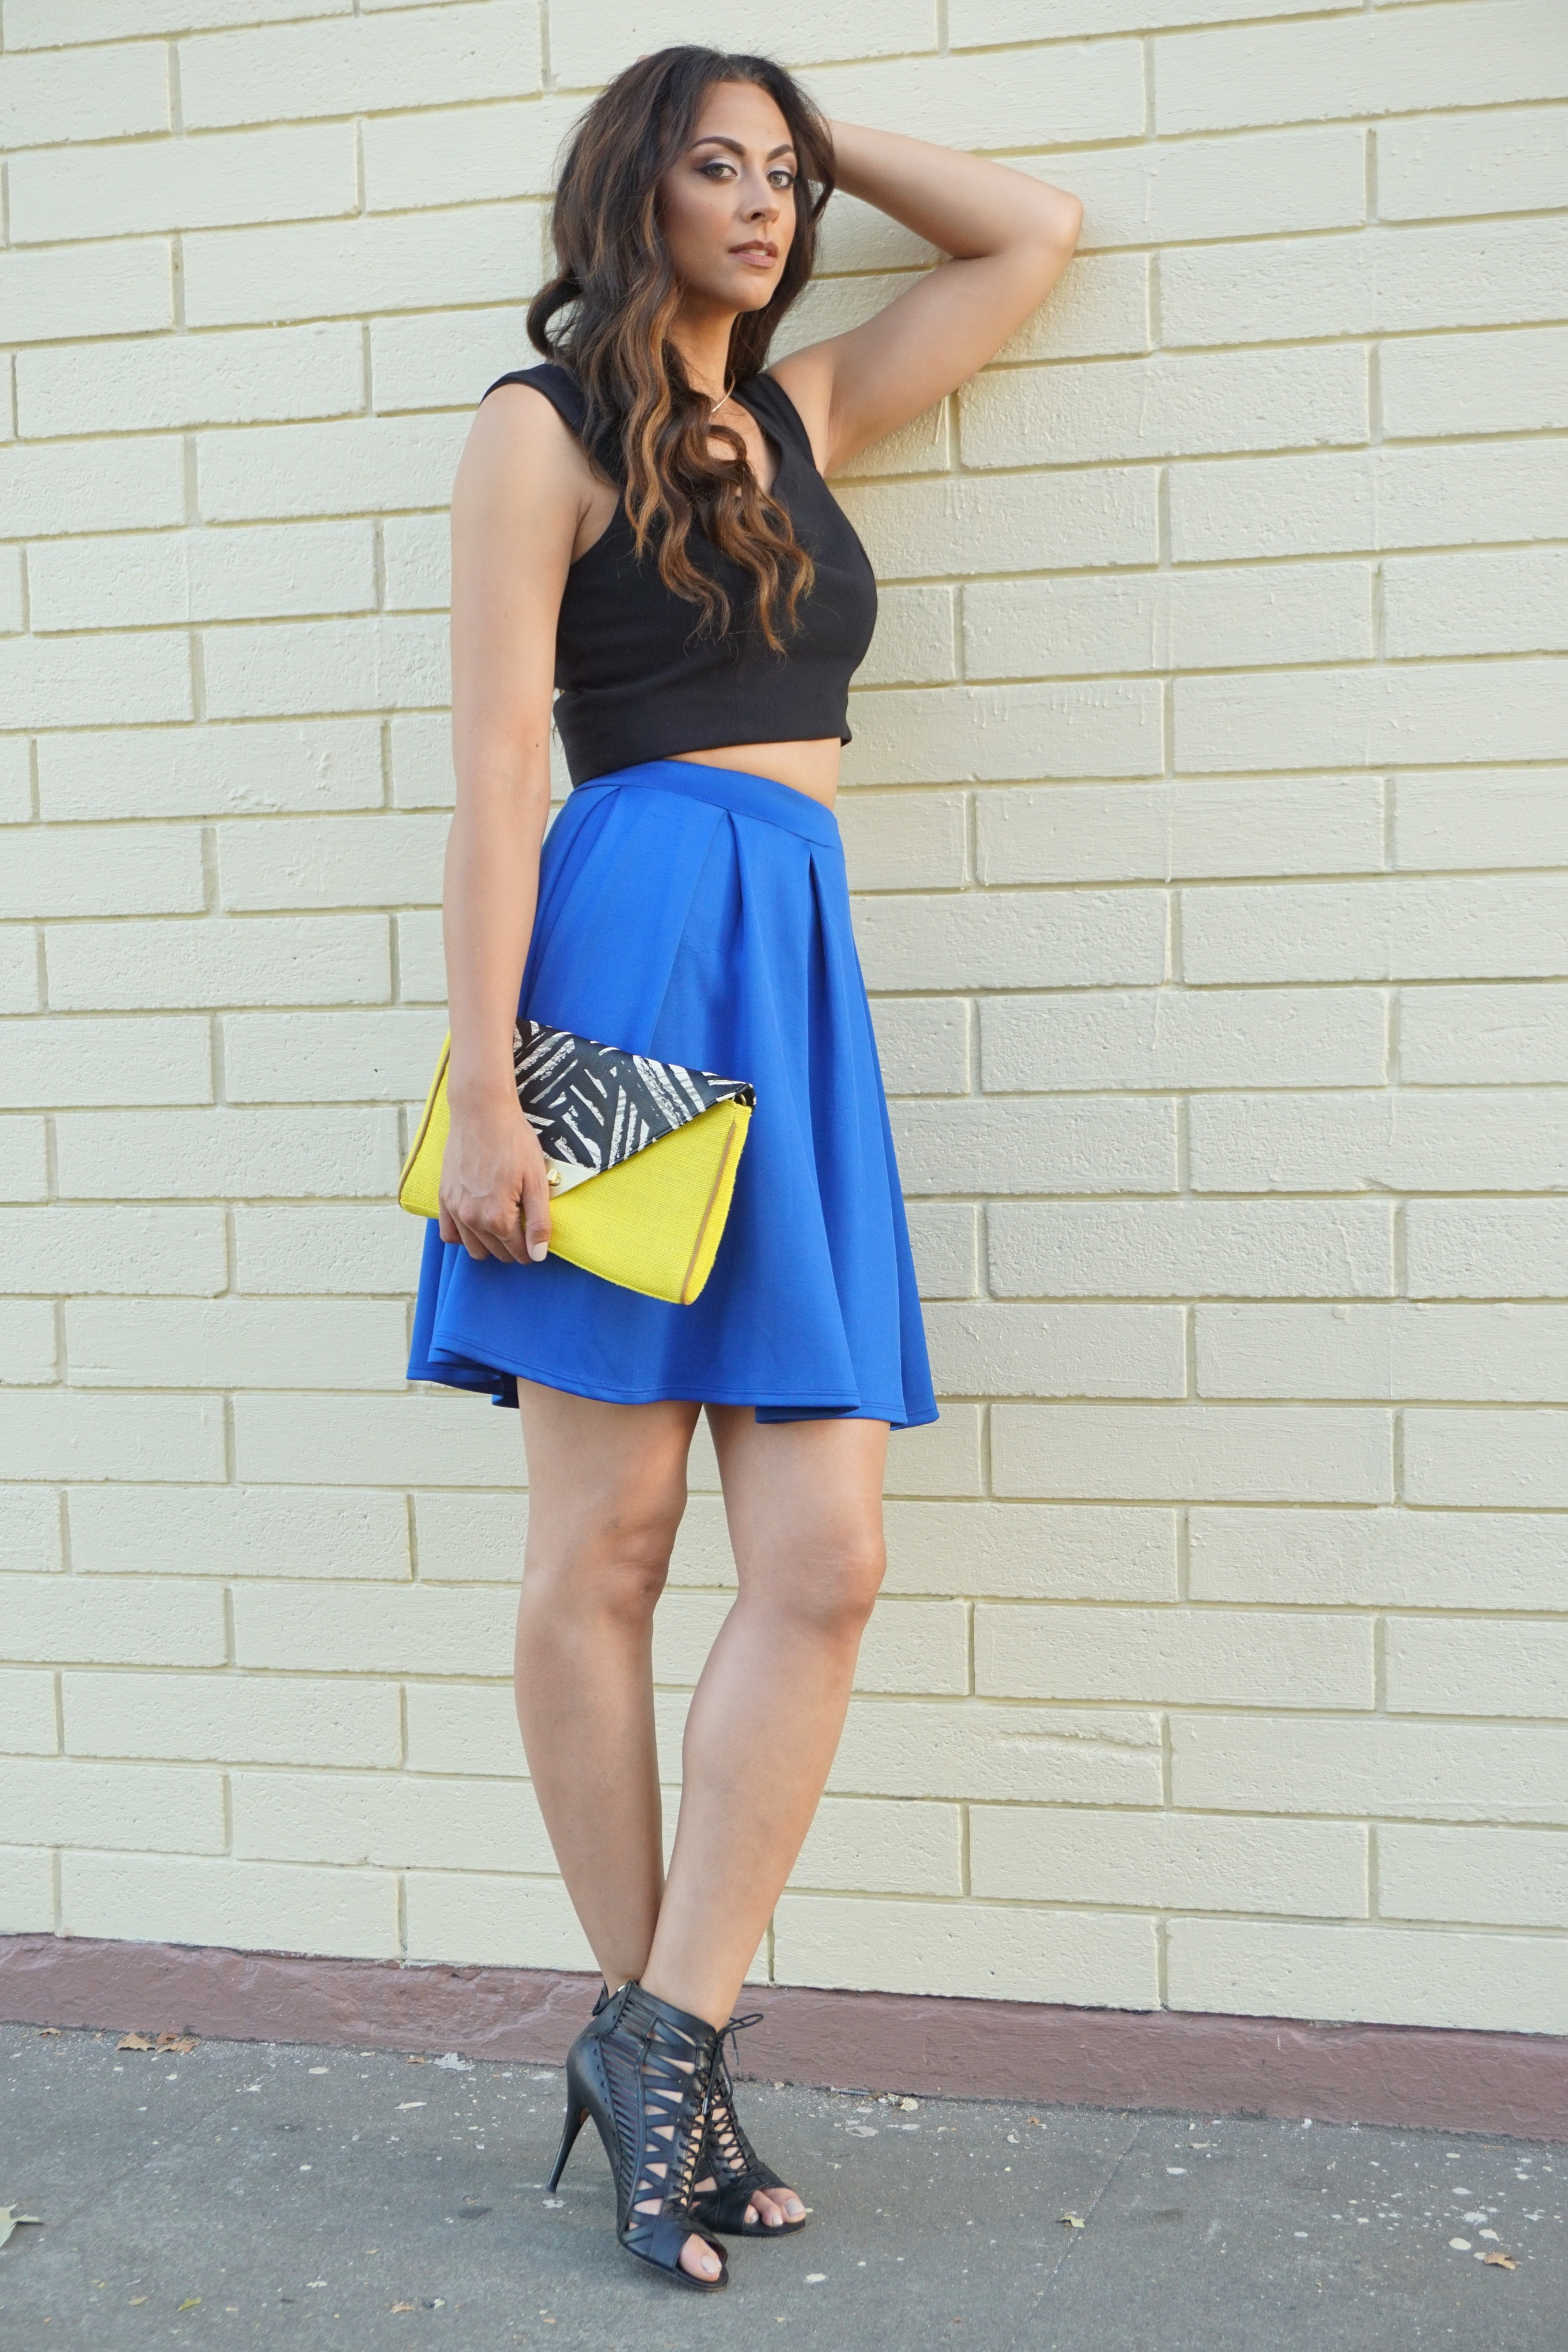 Alicia Jay Long Tall Sally Crop Top #TTYA4LTS Blue Skater Skirt TallSWAG Blog Style Beauty Nine West Collage Clothing Lounge 1b.JPG